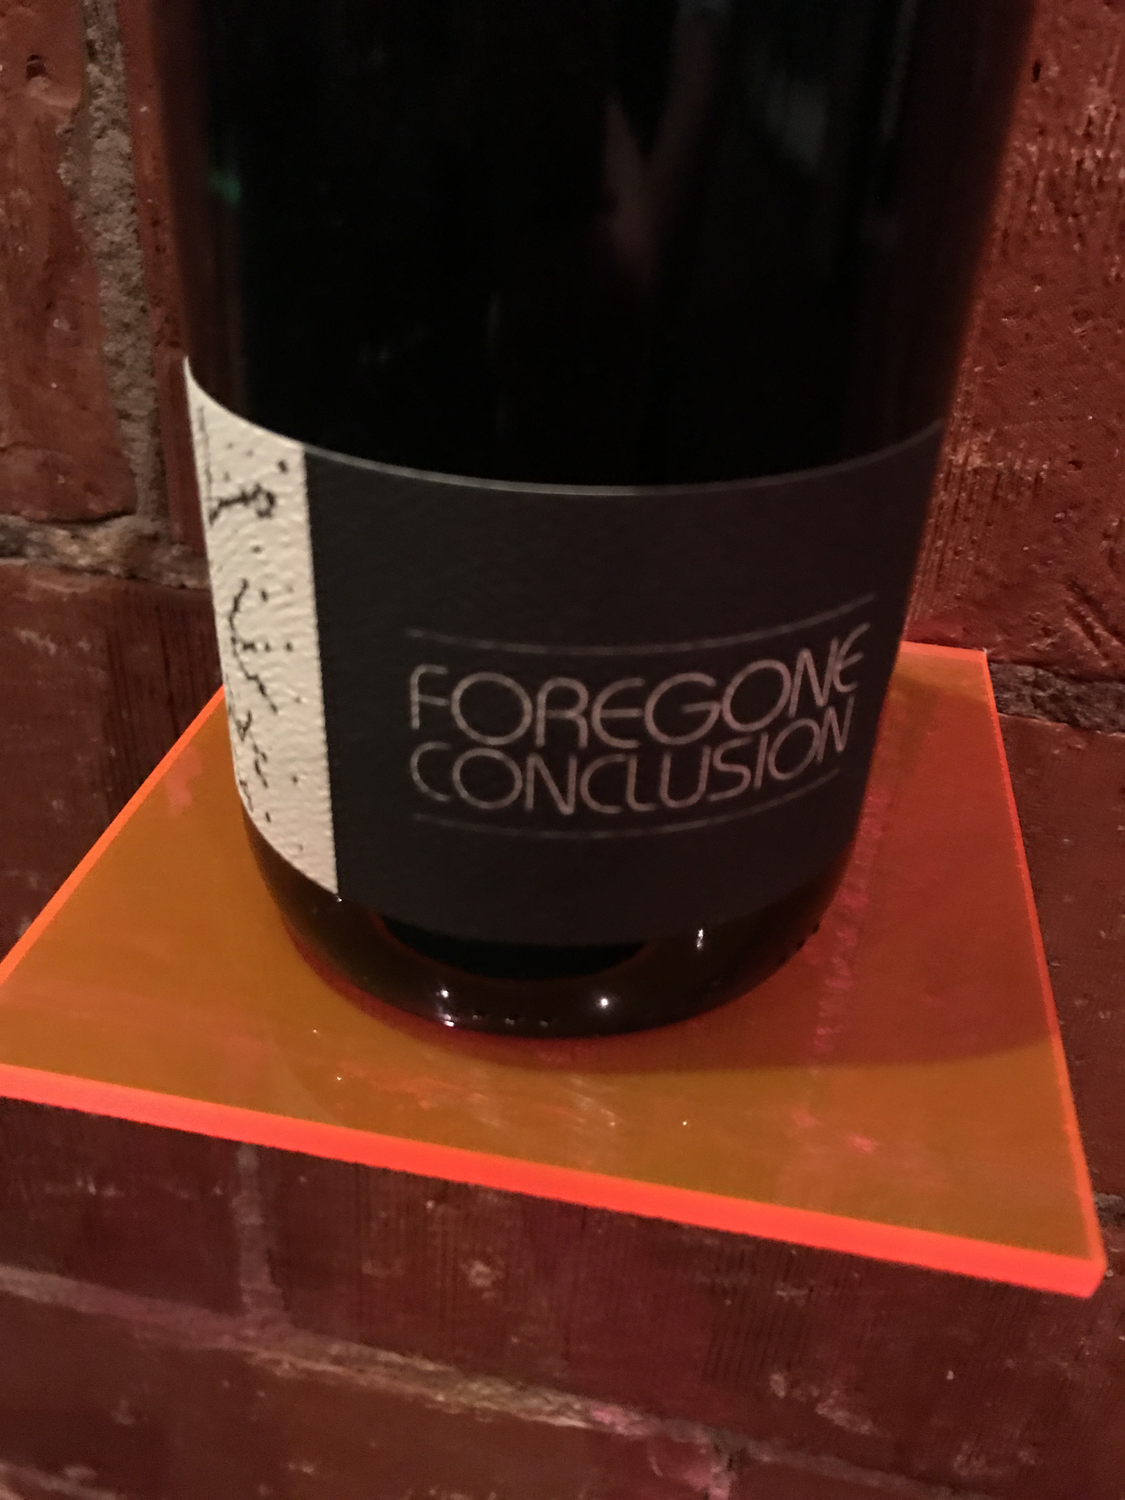 Southold Farm + Cellar Foregone Conclusion 2017